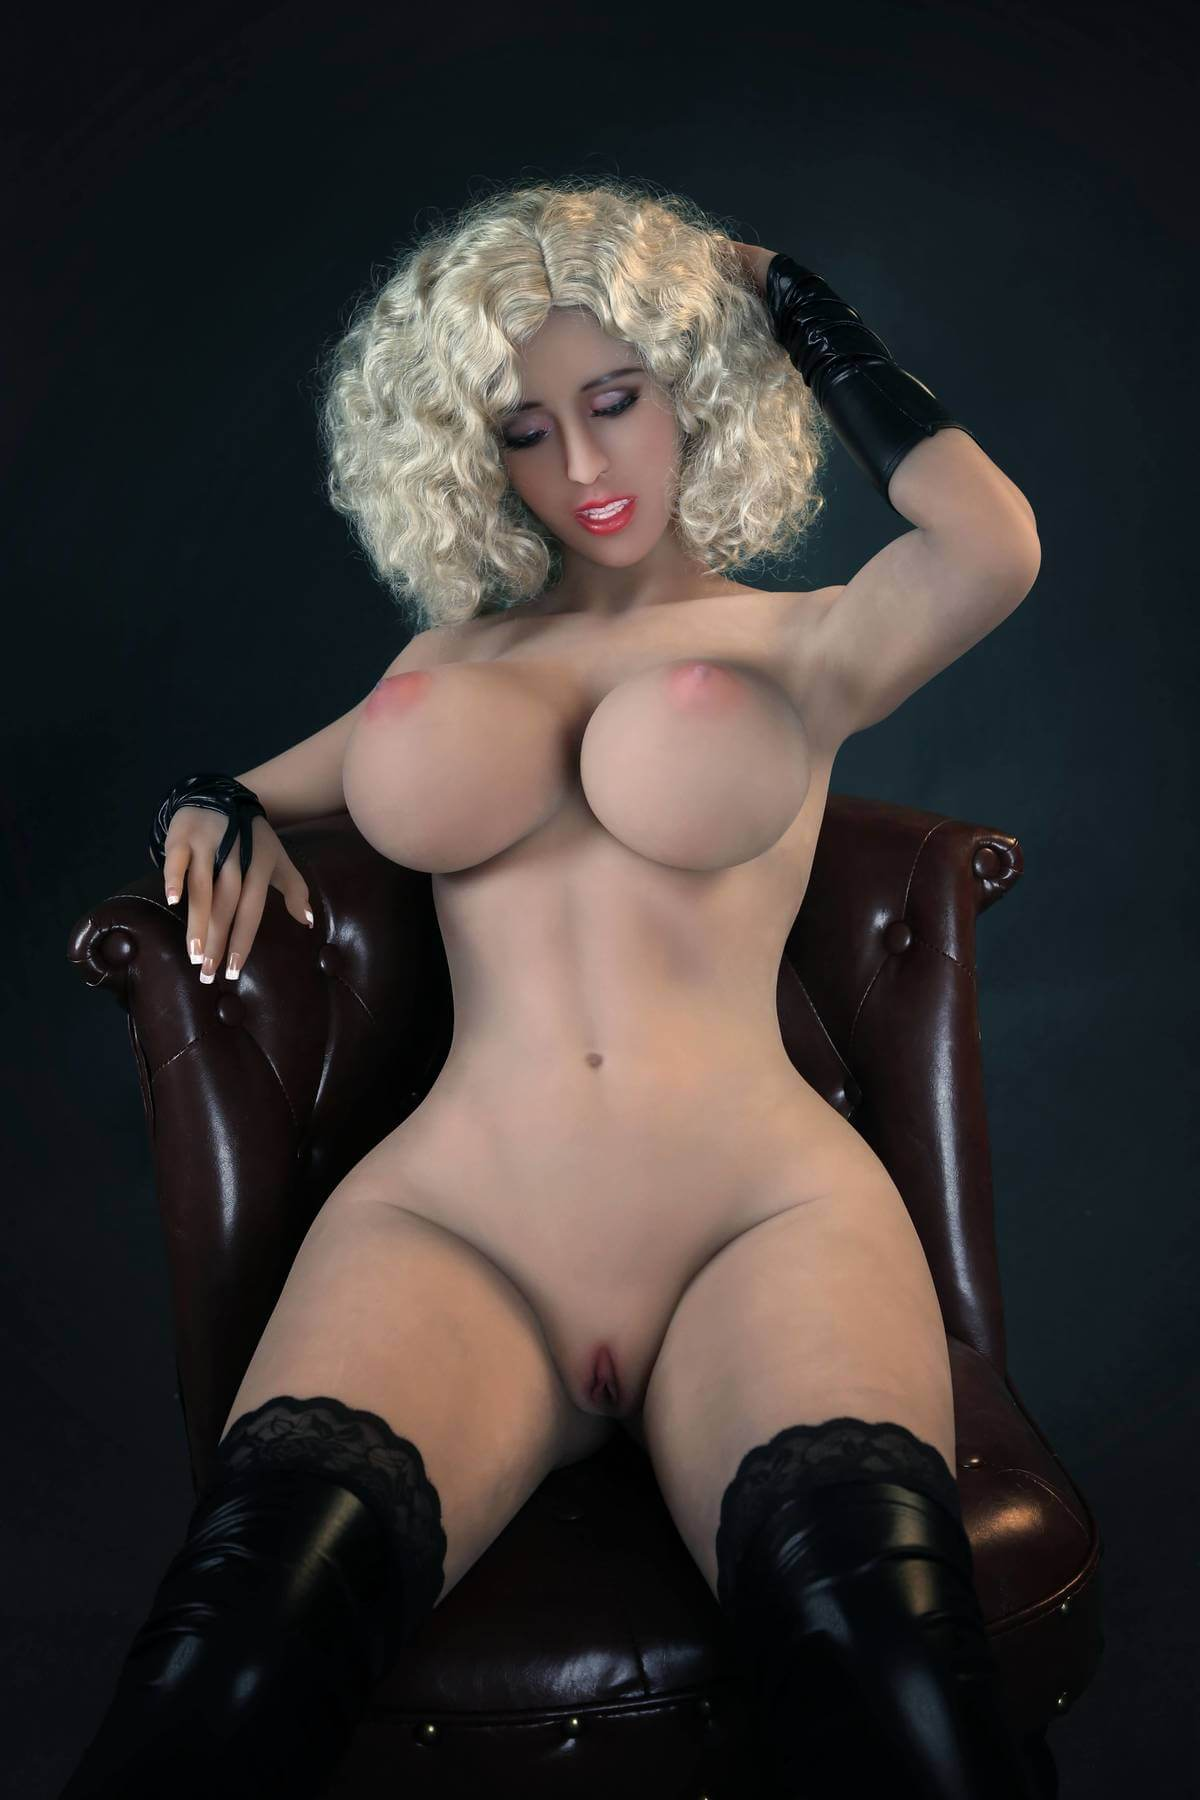 Real Life Milf Sex Doll - Nancy